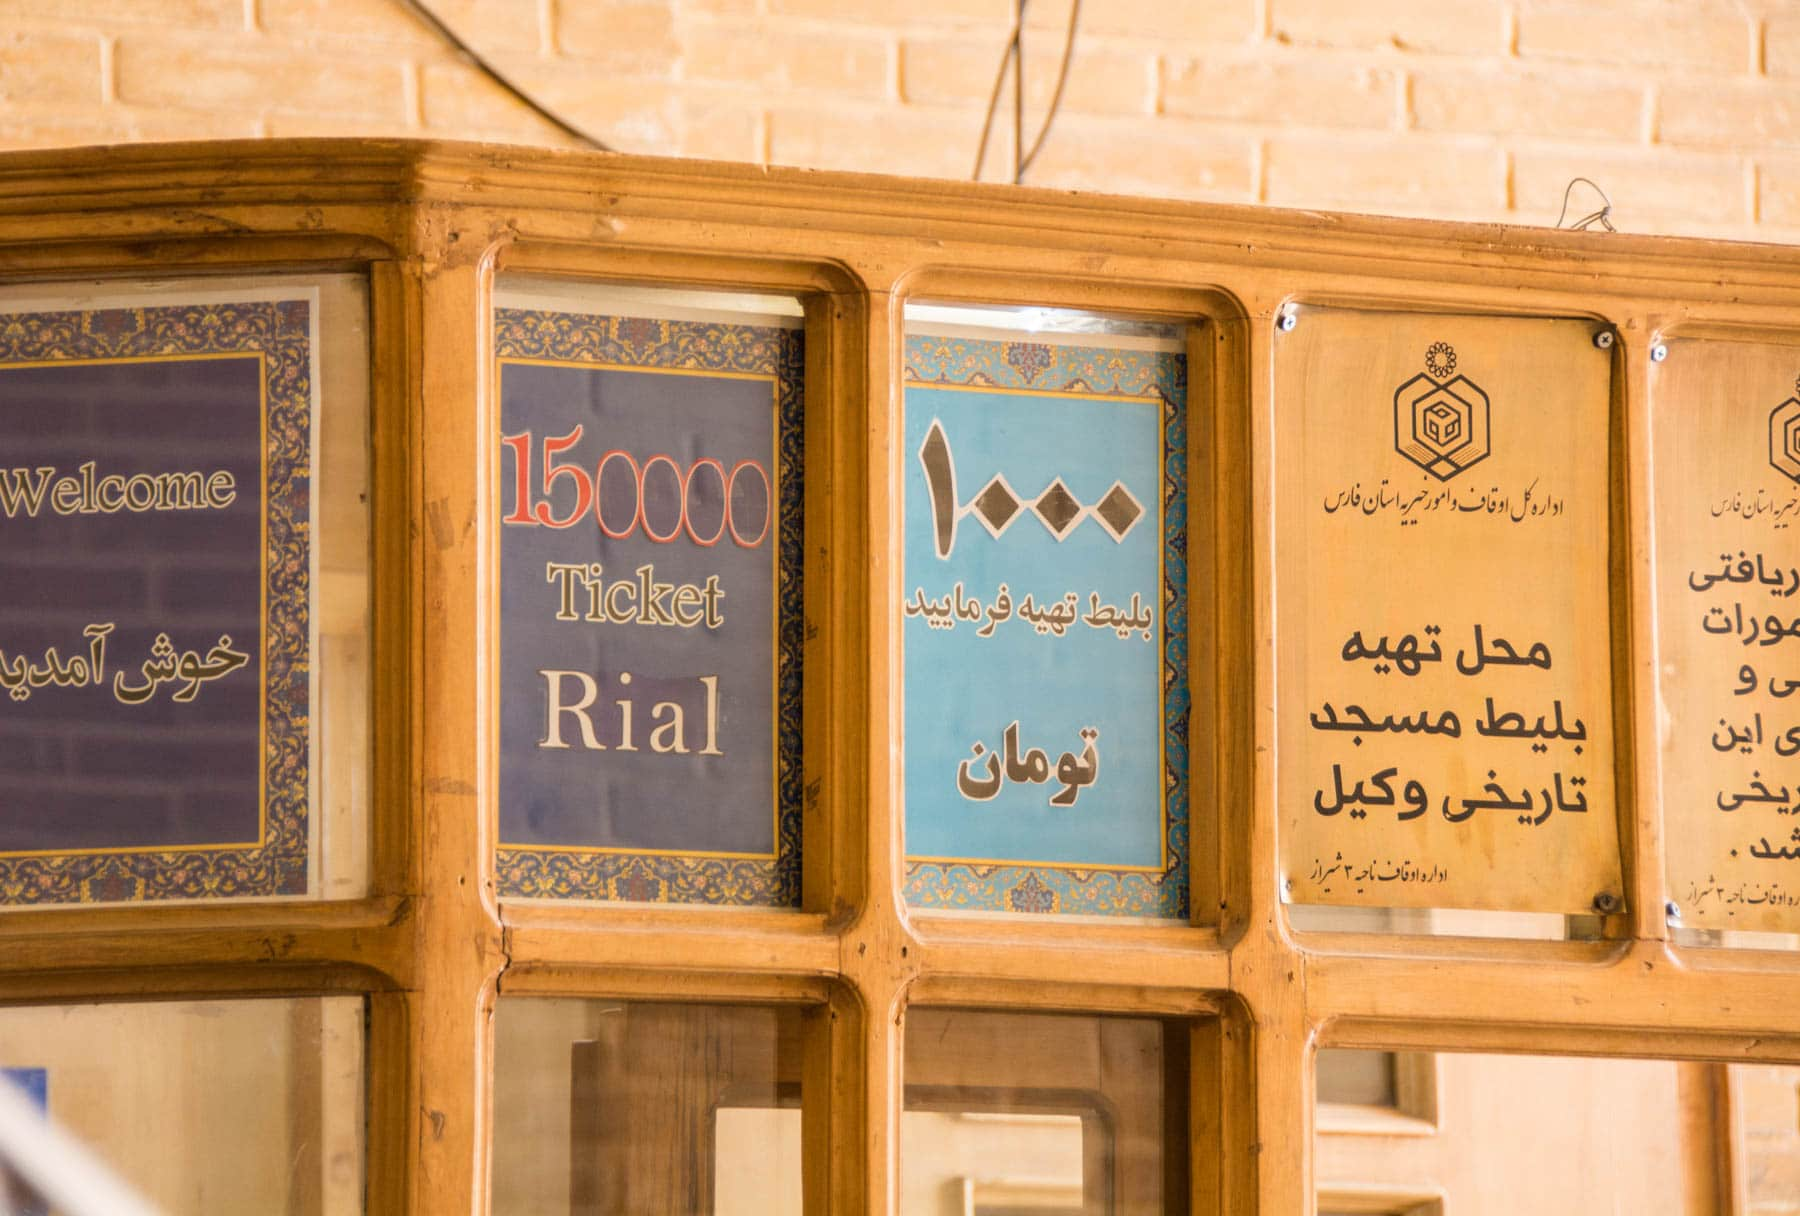 Why dual pricing is unfair - Dual pricing at Vakil Mosque in Shiraz, Iran - Lost With Purpose